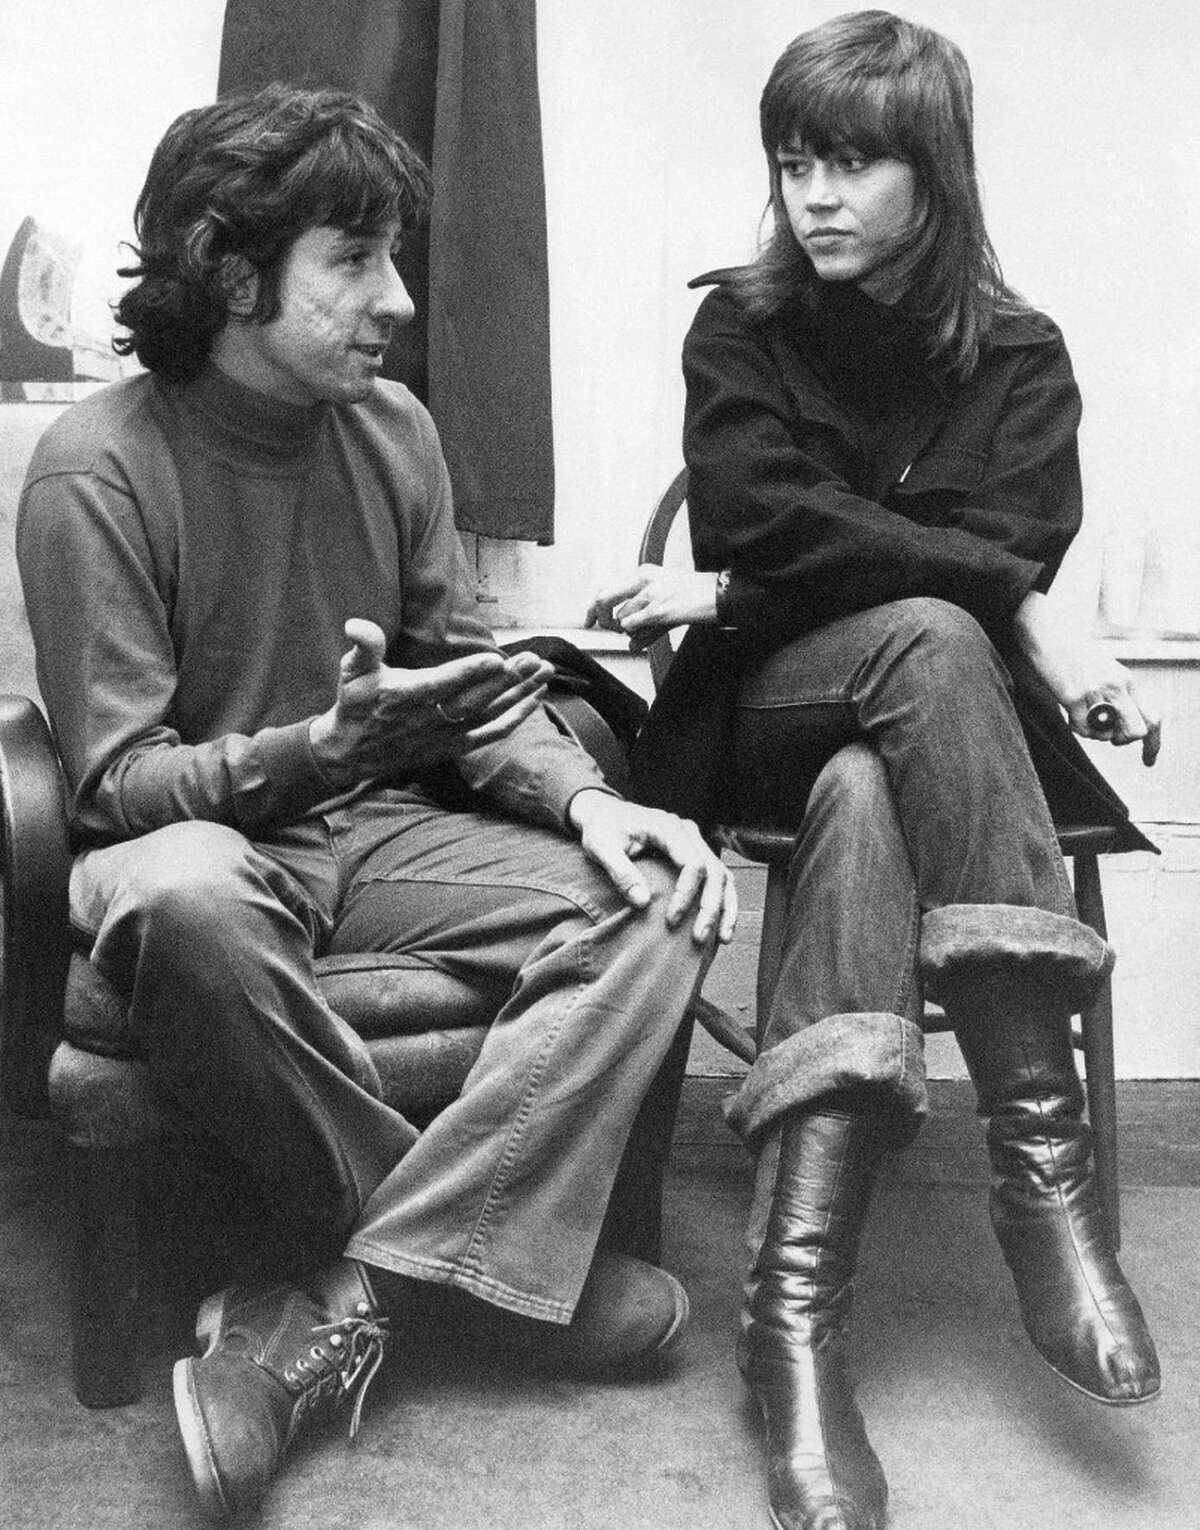 In this Dec. 26, 1972 file photo, actress Jane Fonda, right, and Tom Hayden, one of the founders of SDS, talk at the home of a friend in London, after their arrival from Paris. Hayden, the famed 1960s antiwar activist who moved beyond his notoriety as a Chicago 8 defendant to become a California legislator, author and lecturer, has died at age 76. His wife, Barbara Williams, says Hayden died on Sunday, Oct. 23, 2016, in Santa Monica of a long illness.